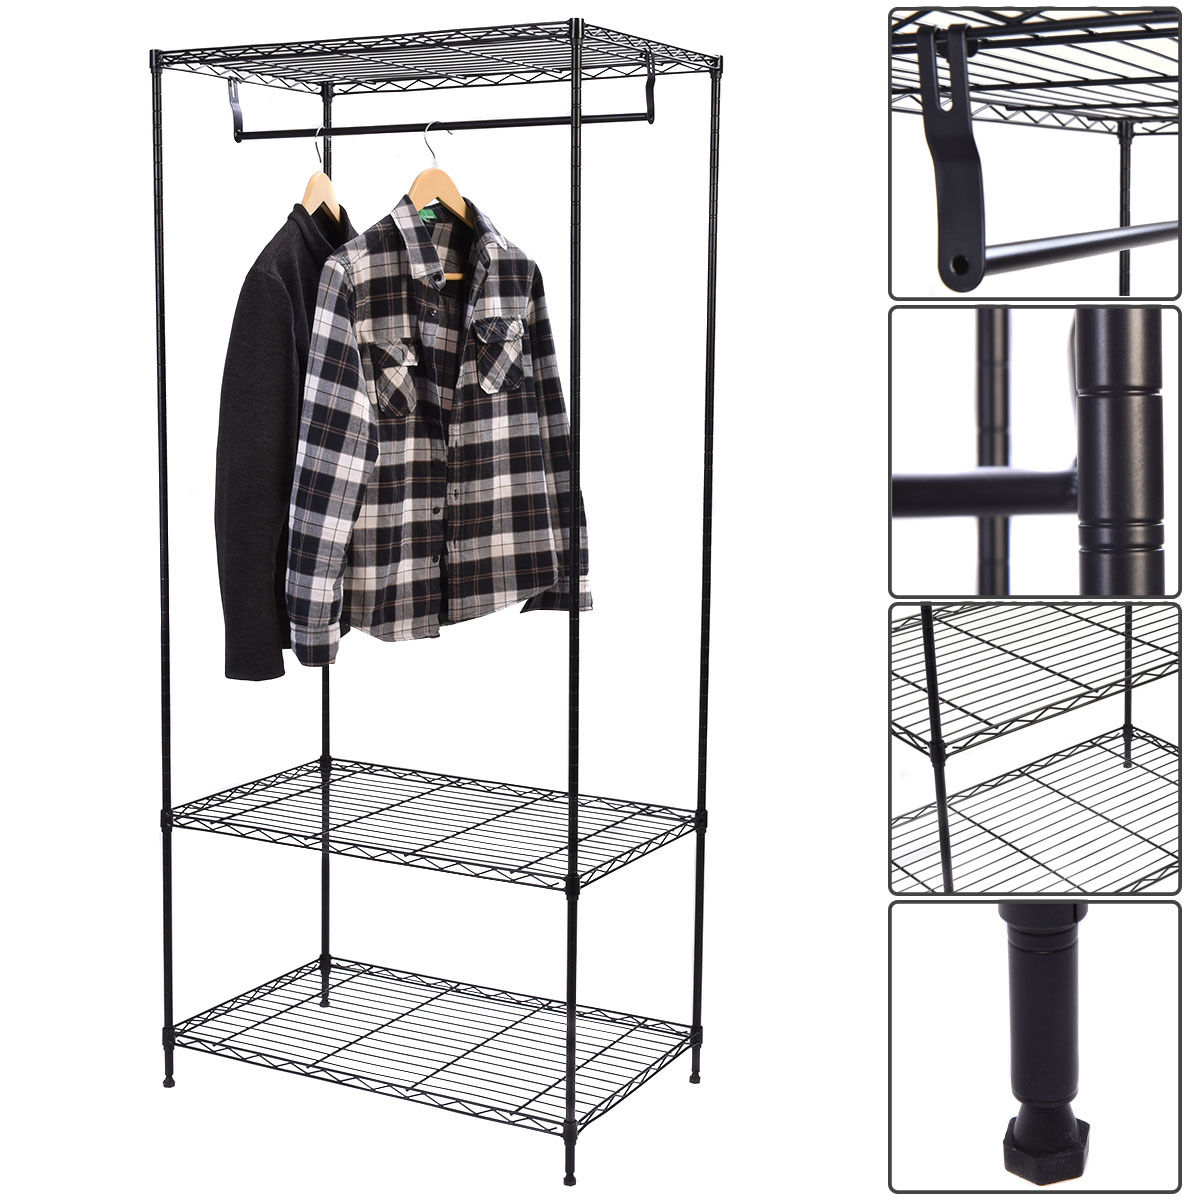 Giantex 3 Tier Clothing Rack Modern Garment Hanger